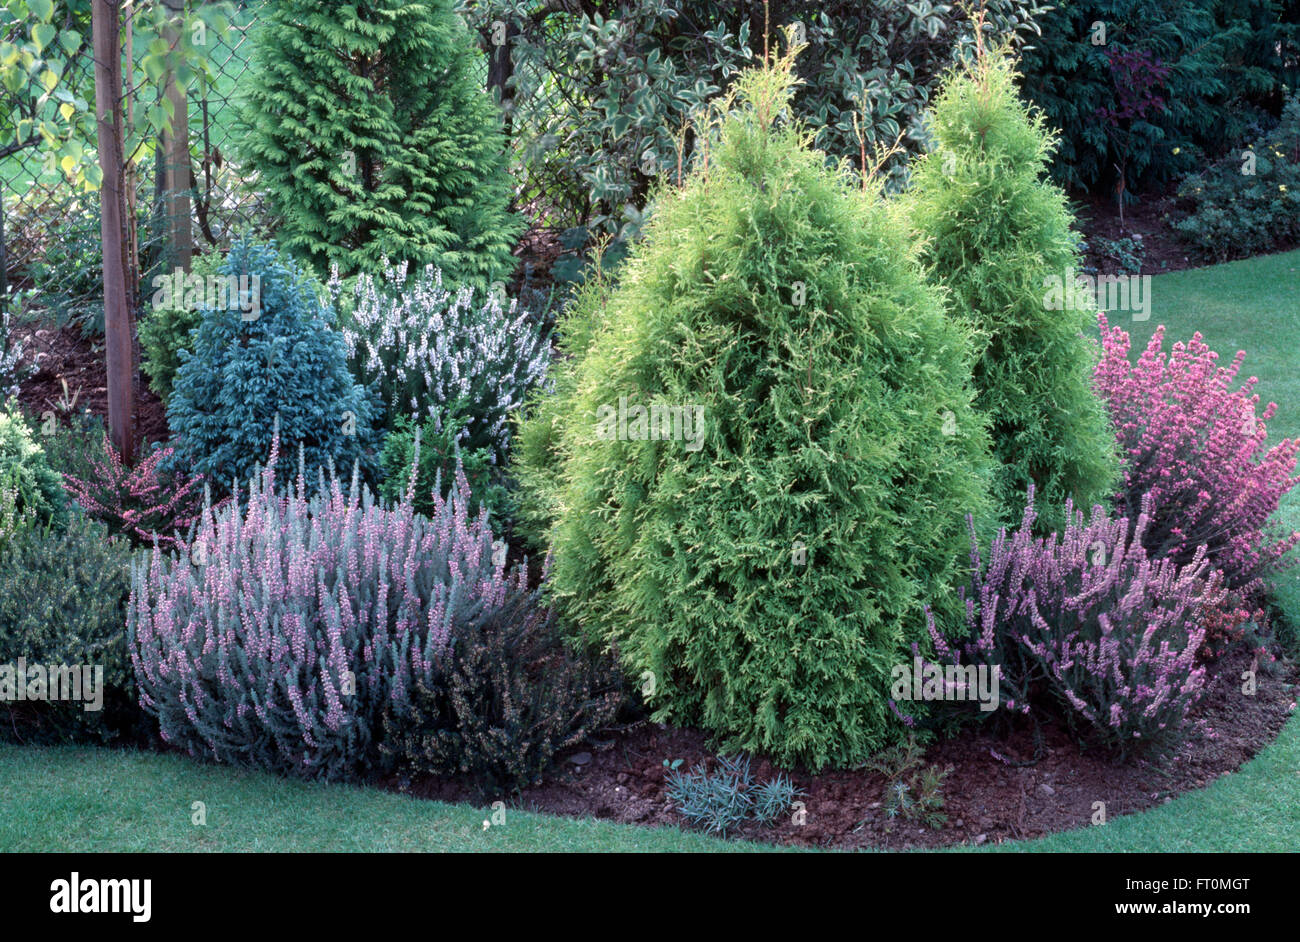 Low Growing Conifers And Mauve Heathers In A Shrub Border